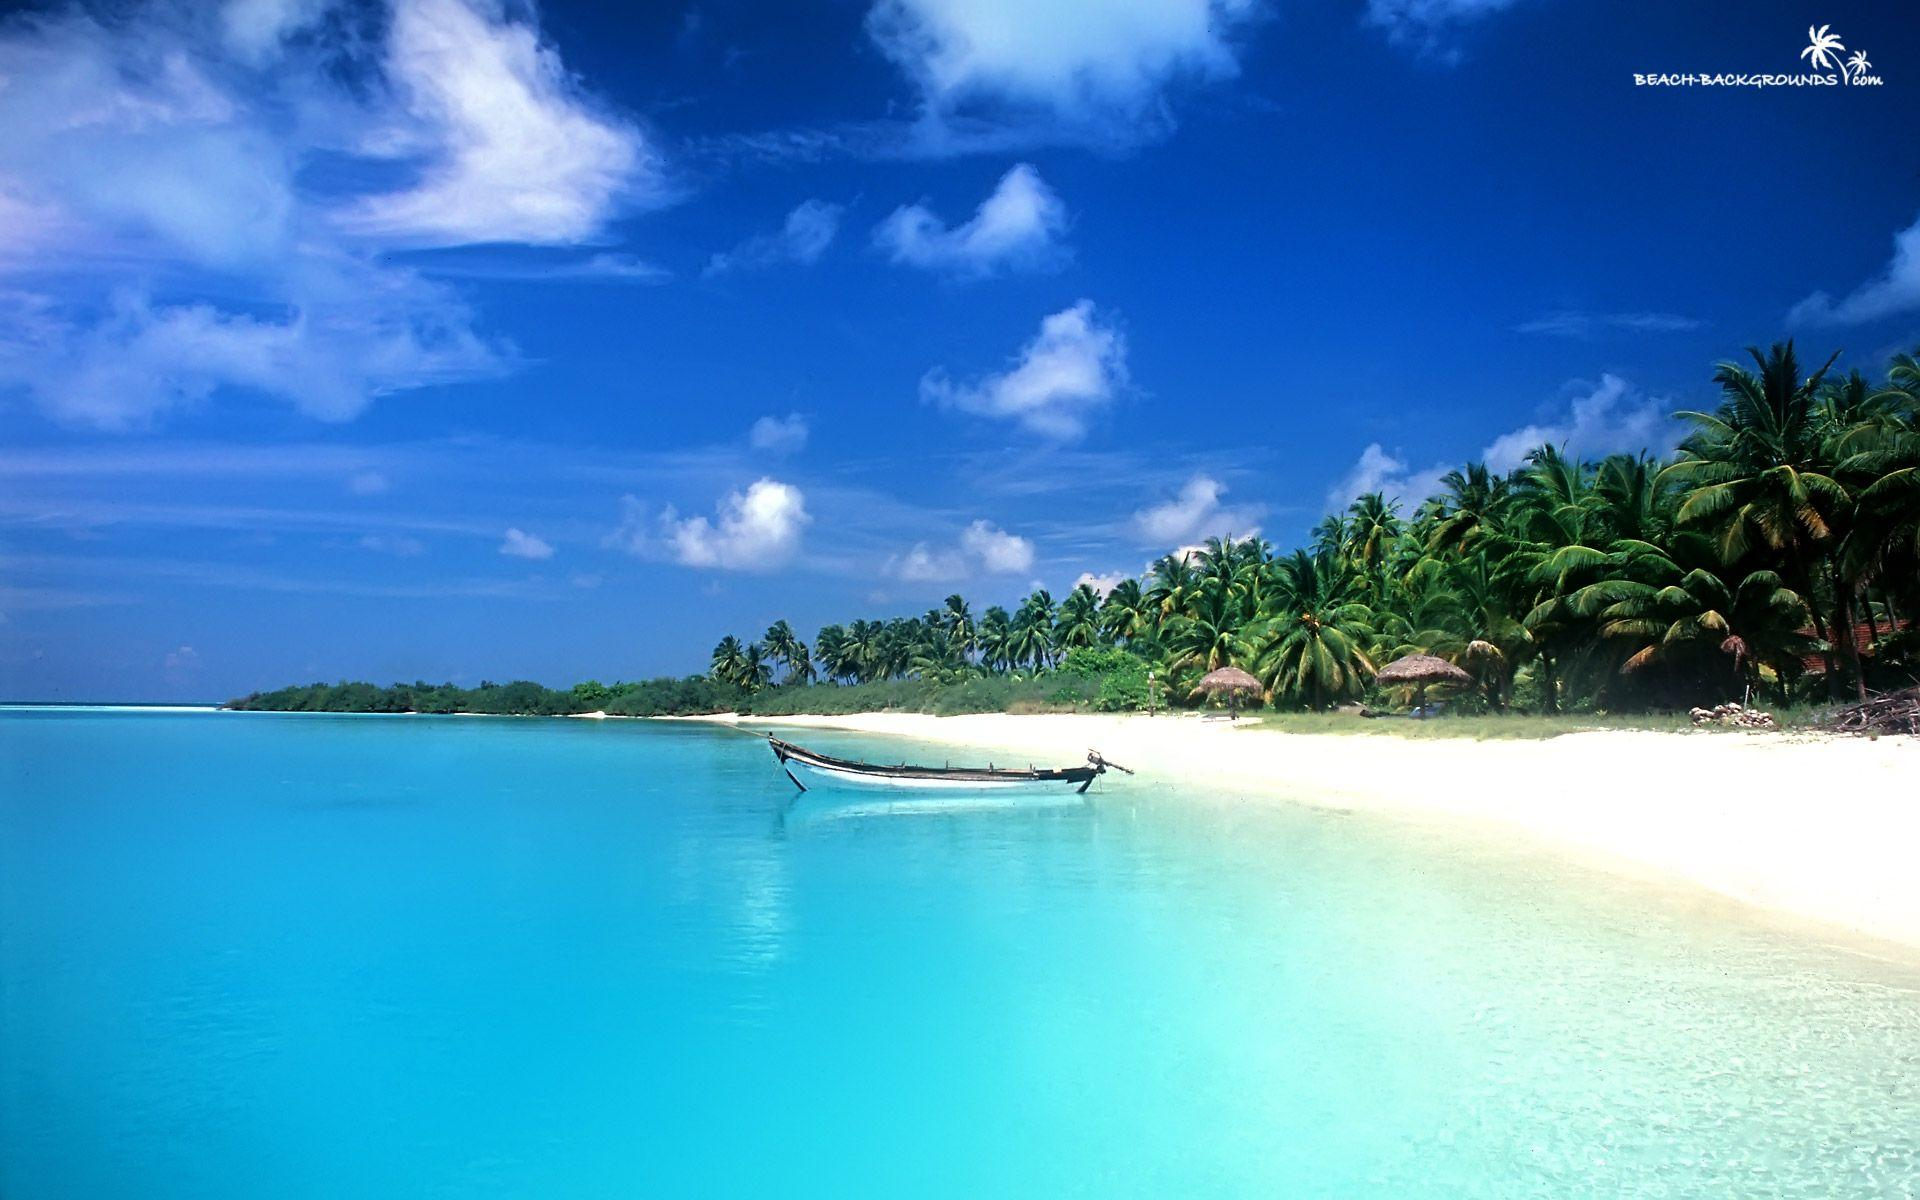 Beautiful Beaches Hd Backgrounds Wallpapers 116 HD Wallpapers